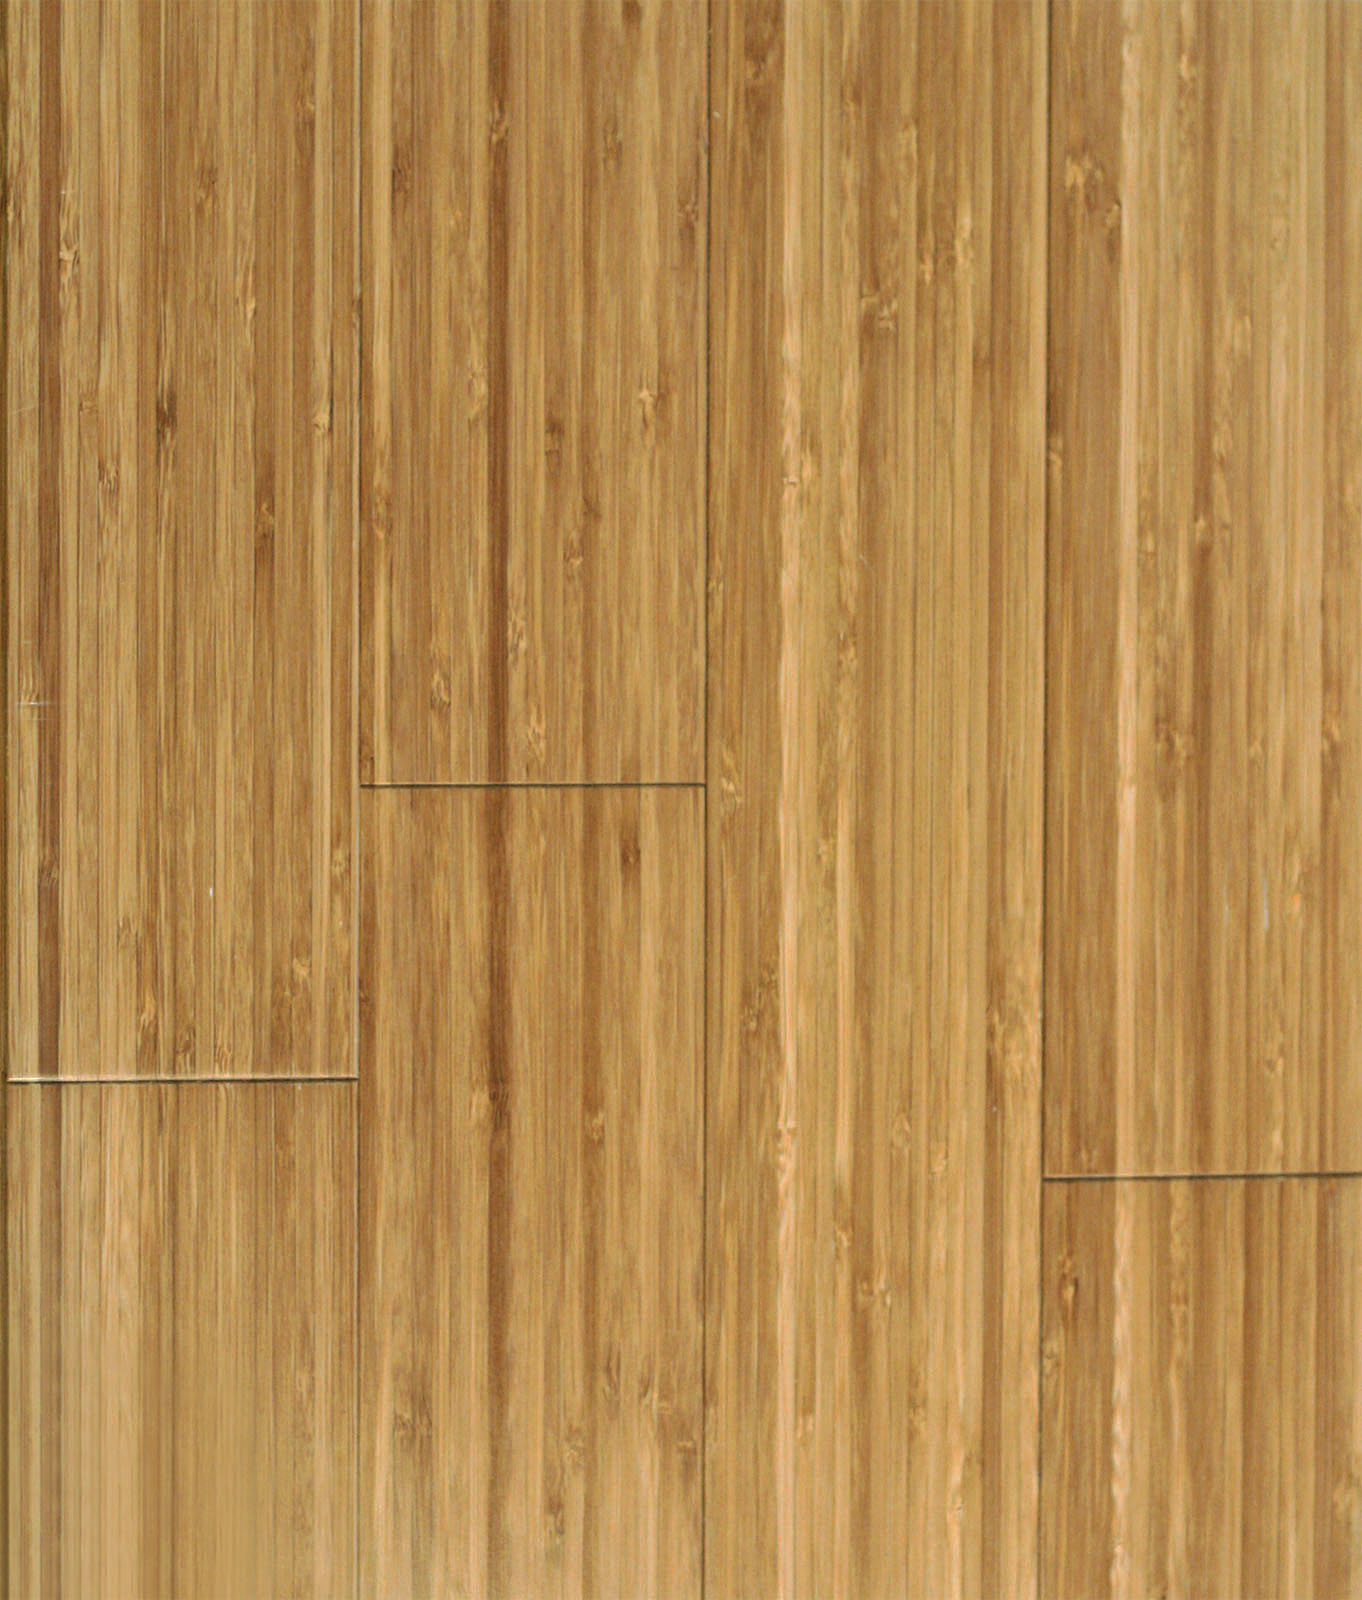 Bamboo Grove Photo Bamboo Hardwood Floors